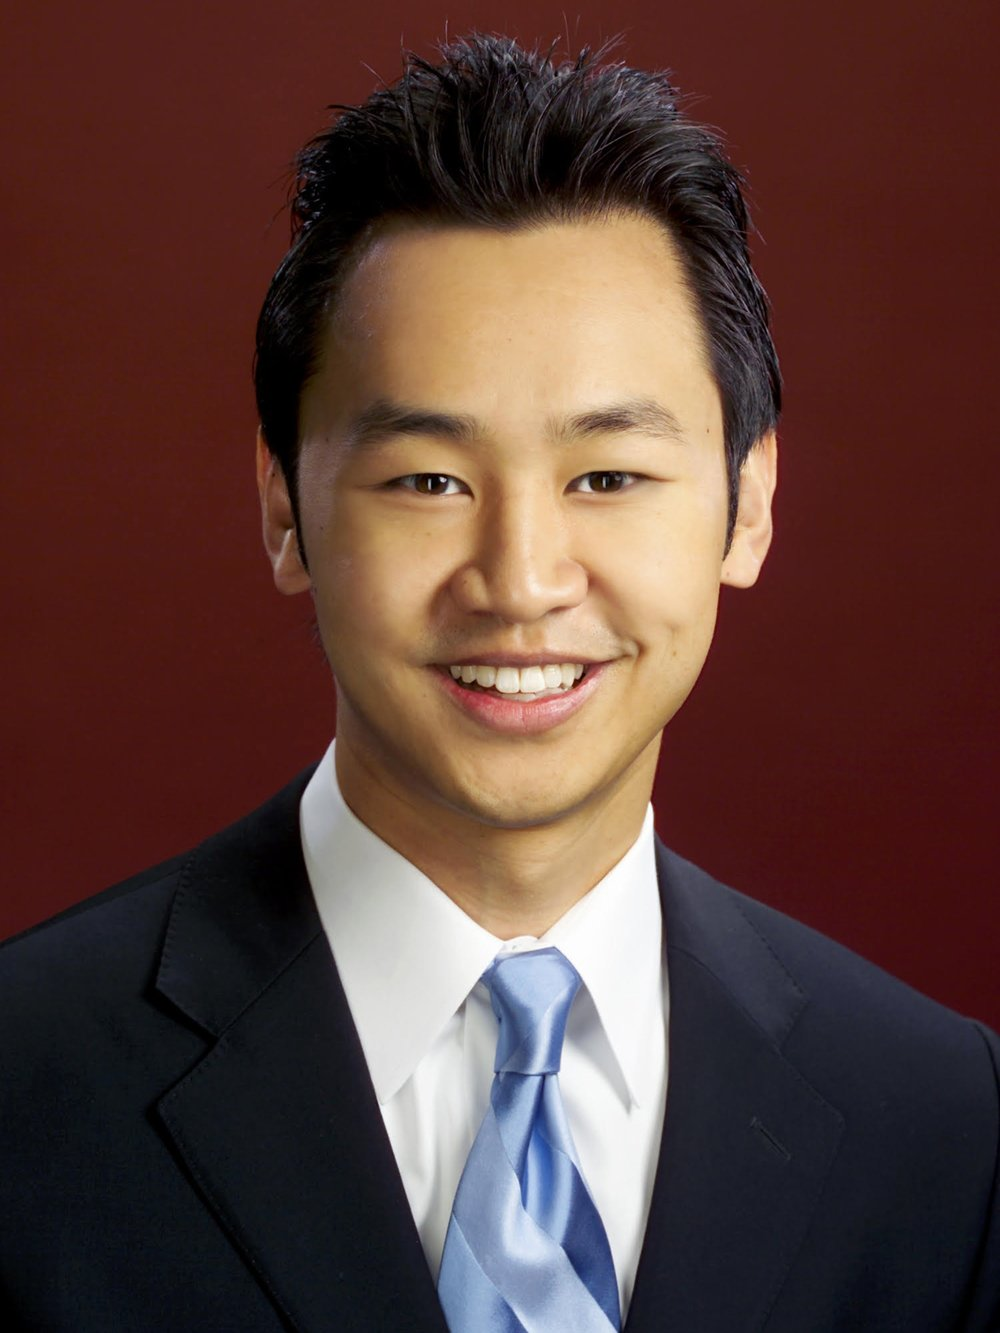 Henry Shih - Henry Shih has been in the home lending business for 13 years and is a top originator at Citibank and based out of the Union Square Flagship branch. Henry and Citibank support community lending in the New York metropolitan area with a variety of closing cost assistance programs, support for HDFC coops, and low down payment options. Henry enjoys rock climbing, snowboarding, Latin dancing, and playing golf in his free time.